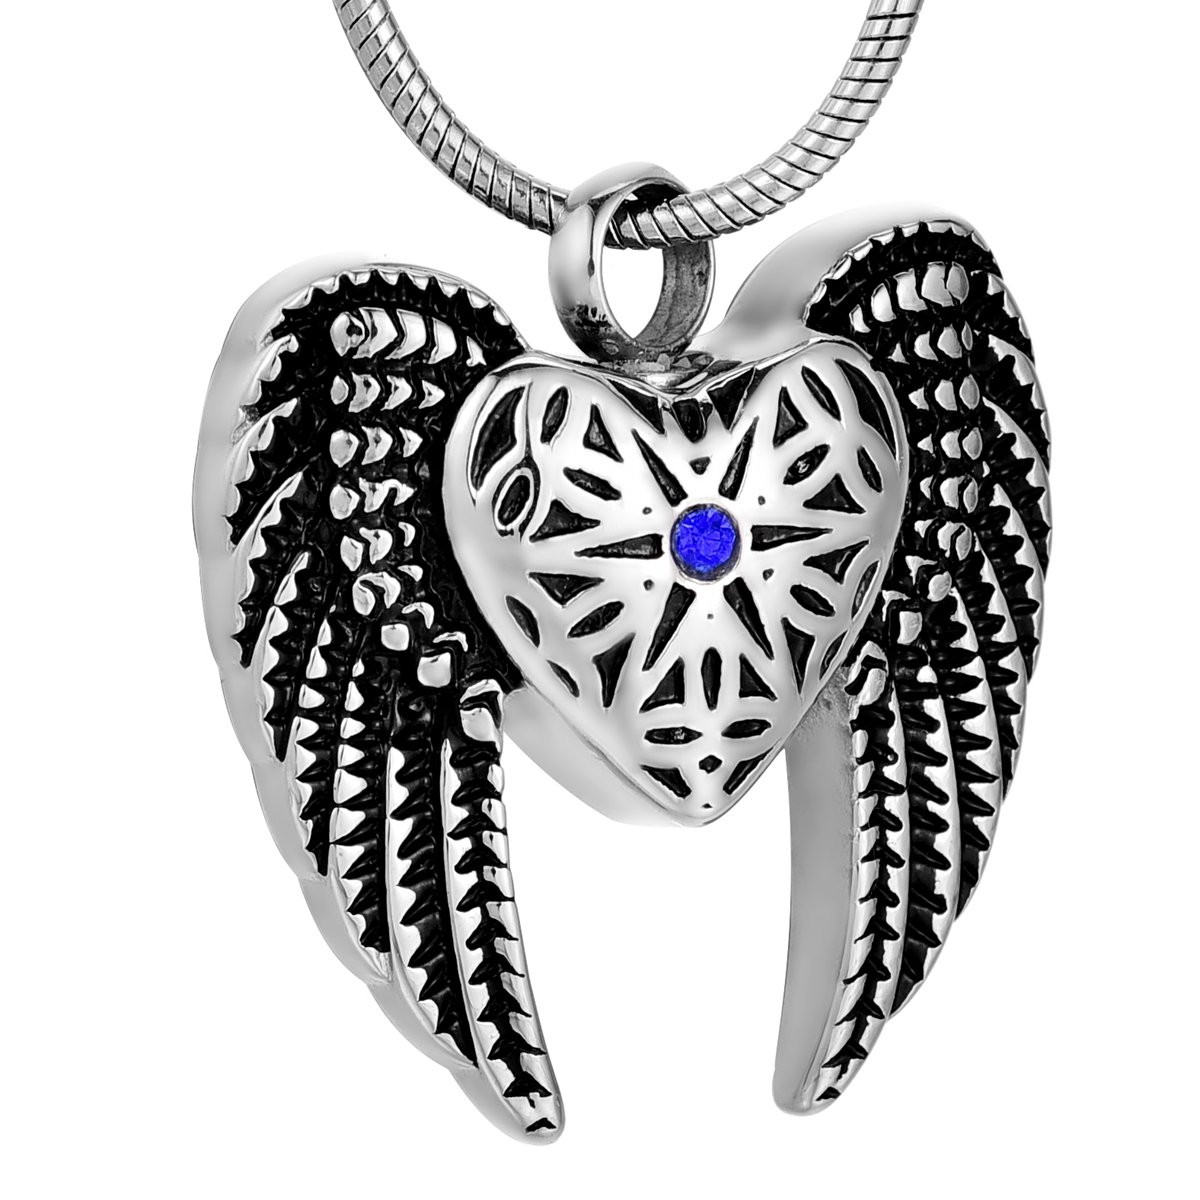 Coco Park Stainless Steel Angel Wing Ash Pendant Cremation Jewelry Urn Necklace Keepsake Blue Diamond COCO Park SC0073-L